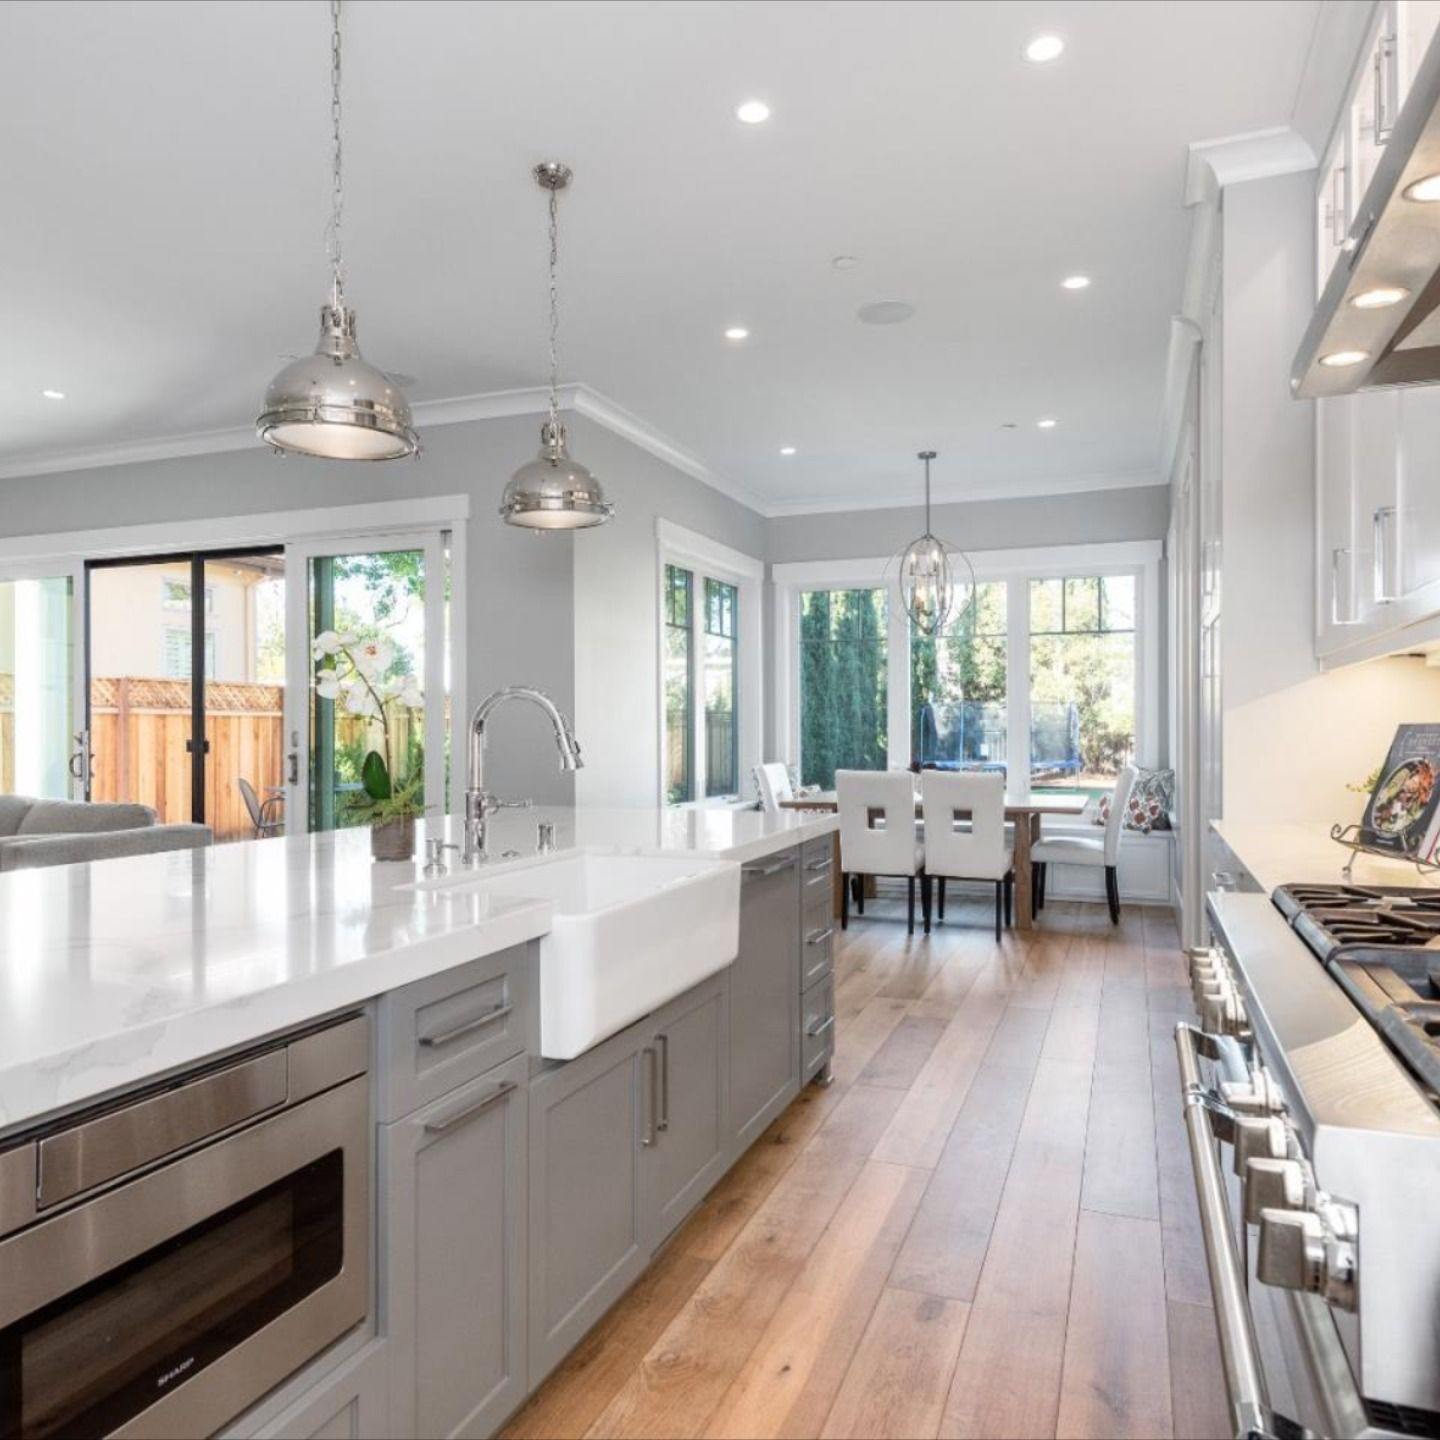 1549 Keesling Ave, San Jose, CA 95125 | $3,300,000 5 Beds | 4.2 Baths | 4,396 Sq. Ft.  For questions or for private showing contact: Carolyn Botts Compass P: (650) 207-0246 E: carolynb@apr.com  #homeforsaleinSanJose #homesforsale #SanJoseHomes #houseforsale #forsale #realtor #compass #realestate #luxuryrealestate #realestateagent #dreamhome #milliondollarhomes #realestatemarket #homes #findhome  #homebuyers #housingmarket #siliconvalleyhomes #siliconvalley #carolynbotts #carolynbottsrealtor